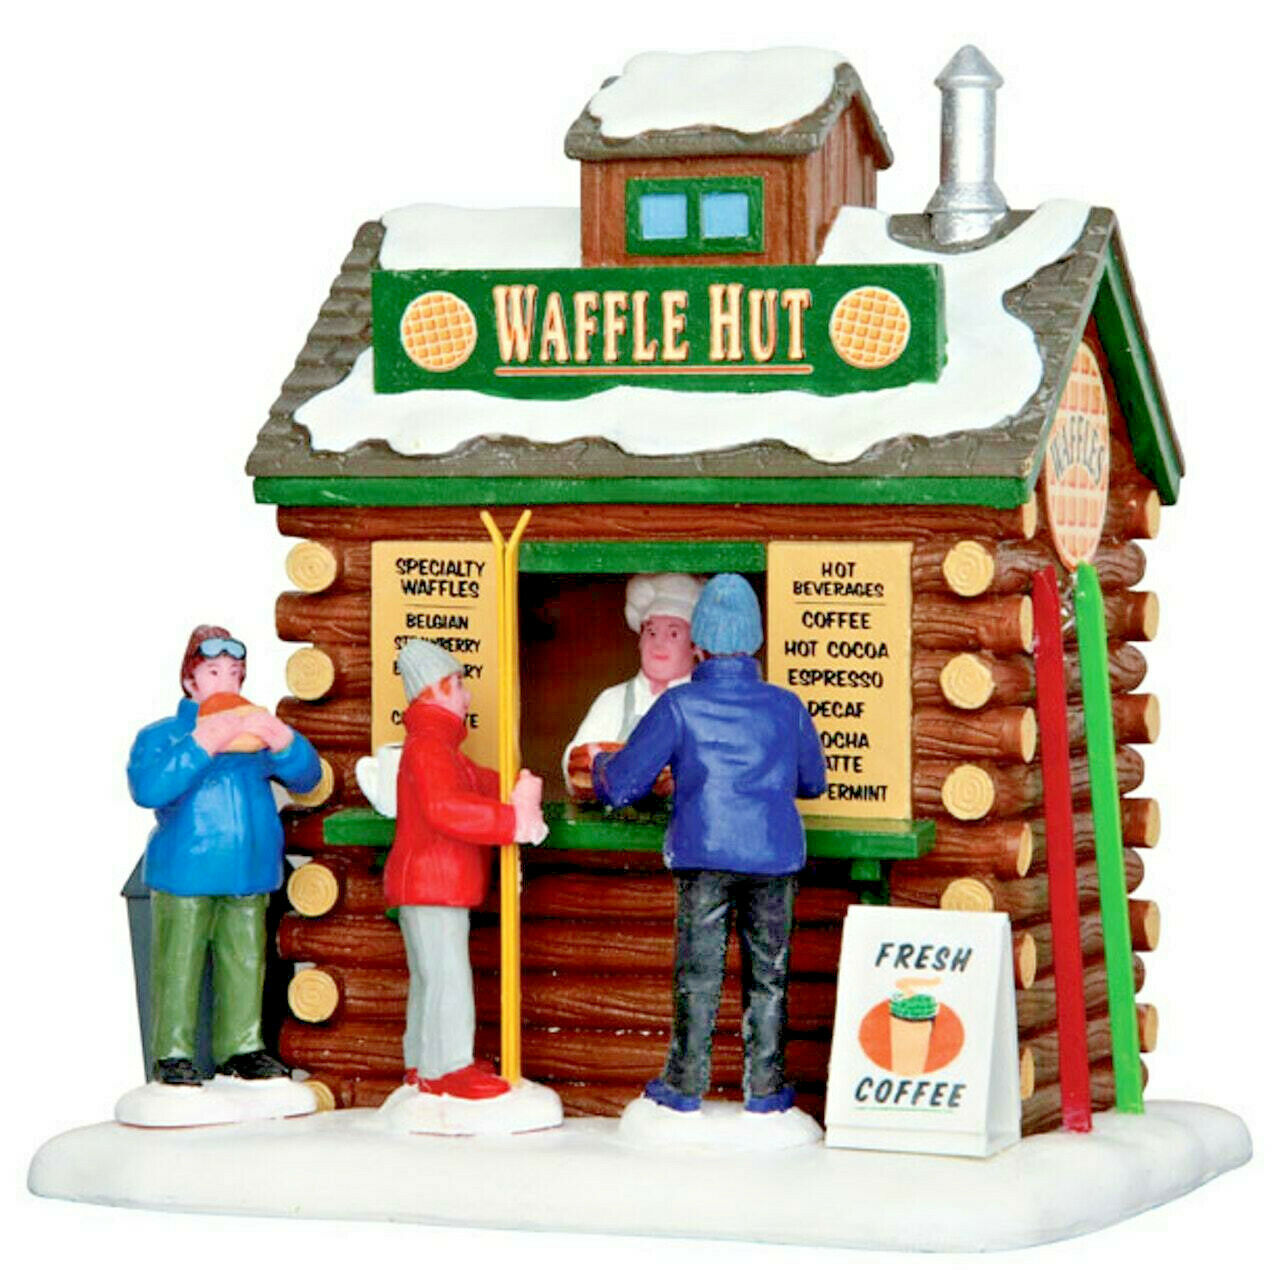 Lemax Christmas Village Waffle Hut #43074 Table Accent